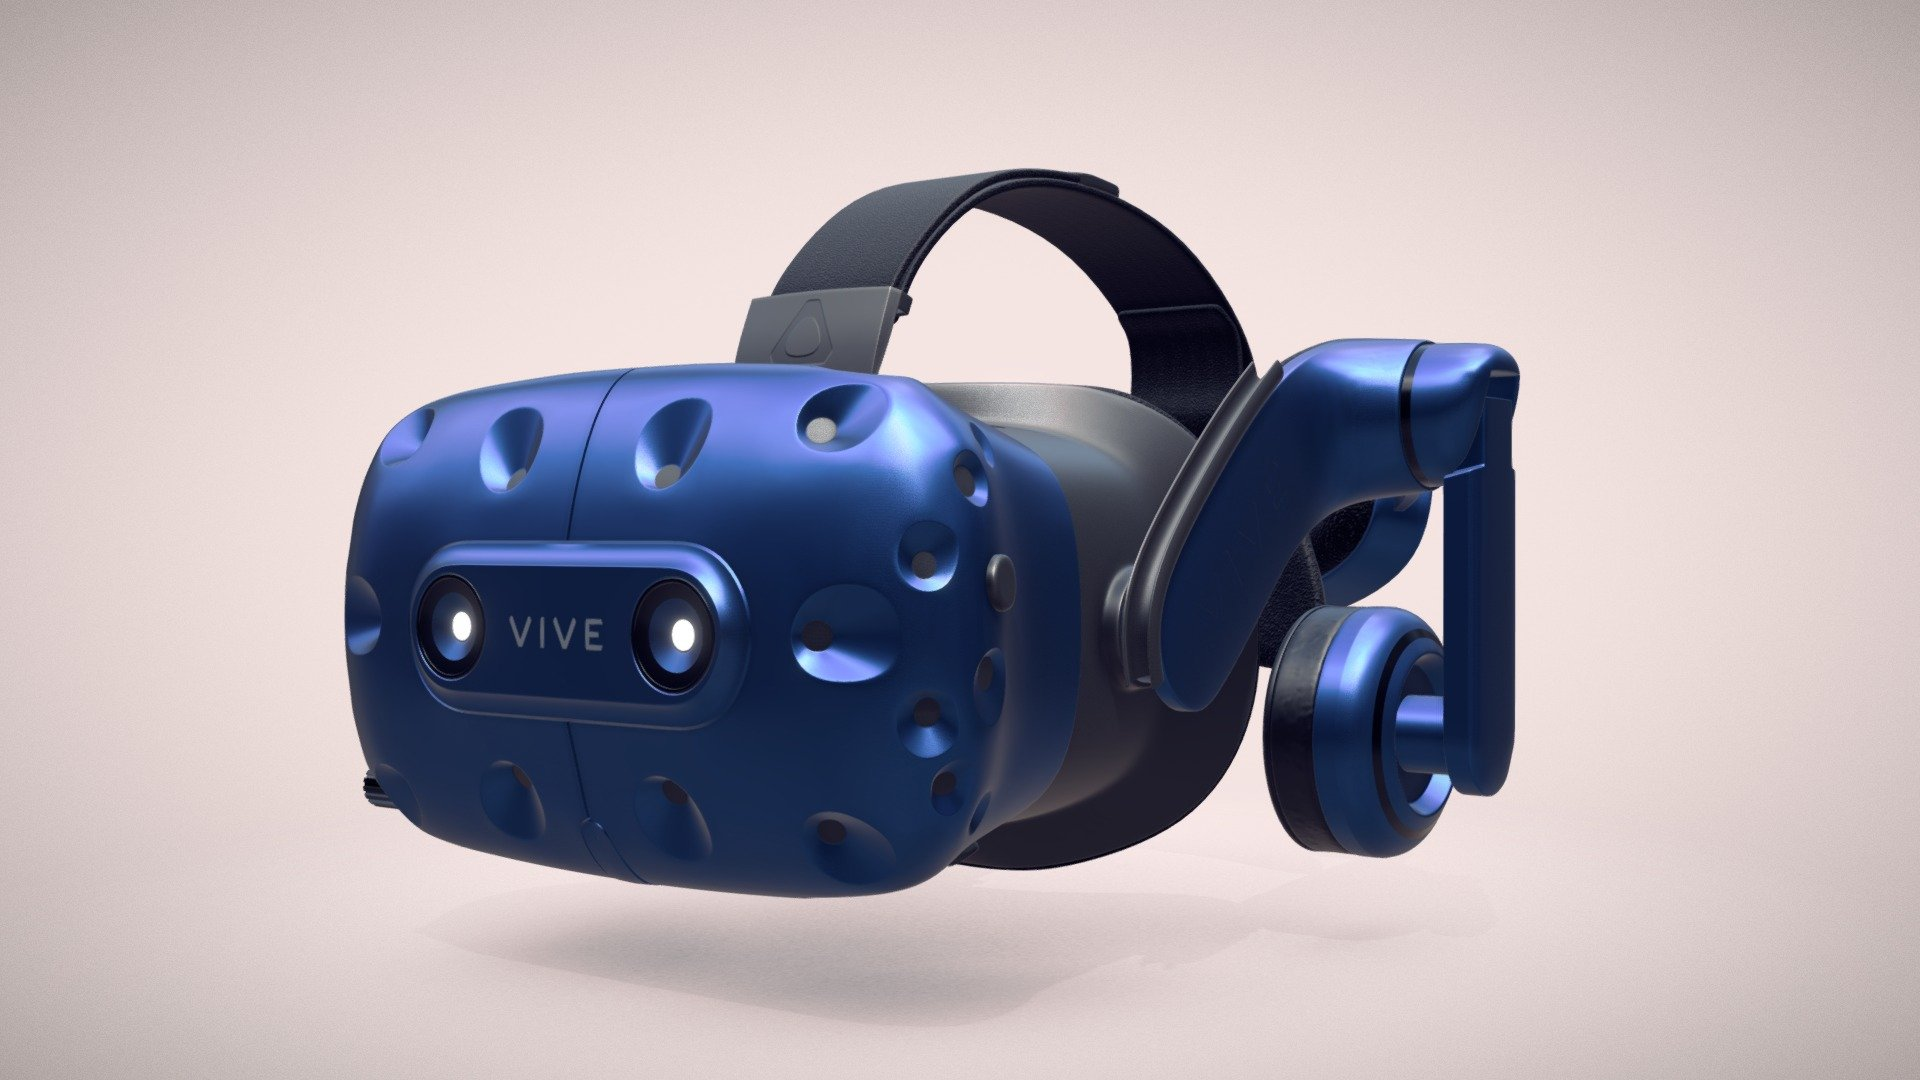 HTC Vive Pro - Download Free 3D model by Eternal Realm